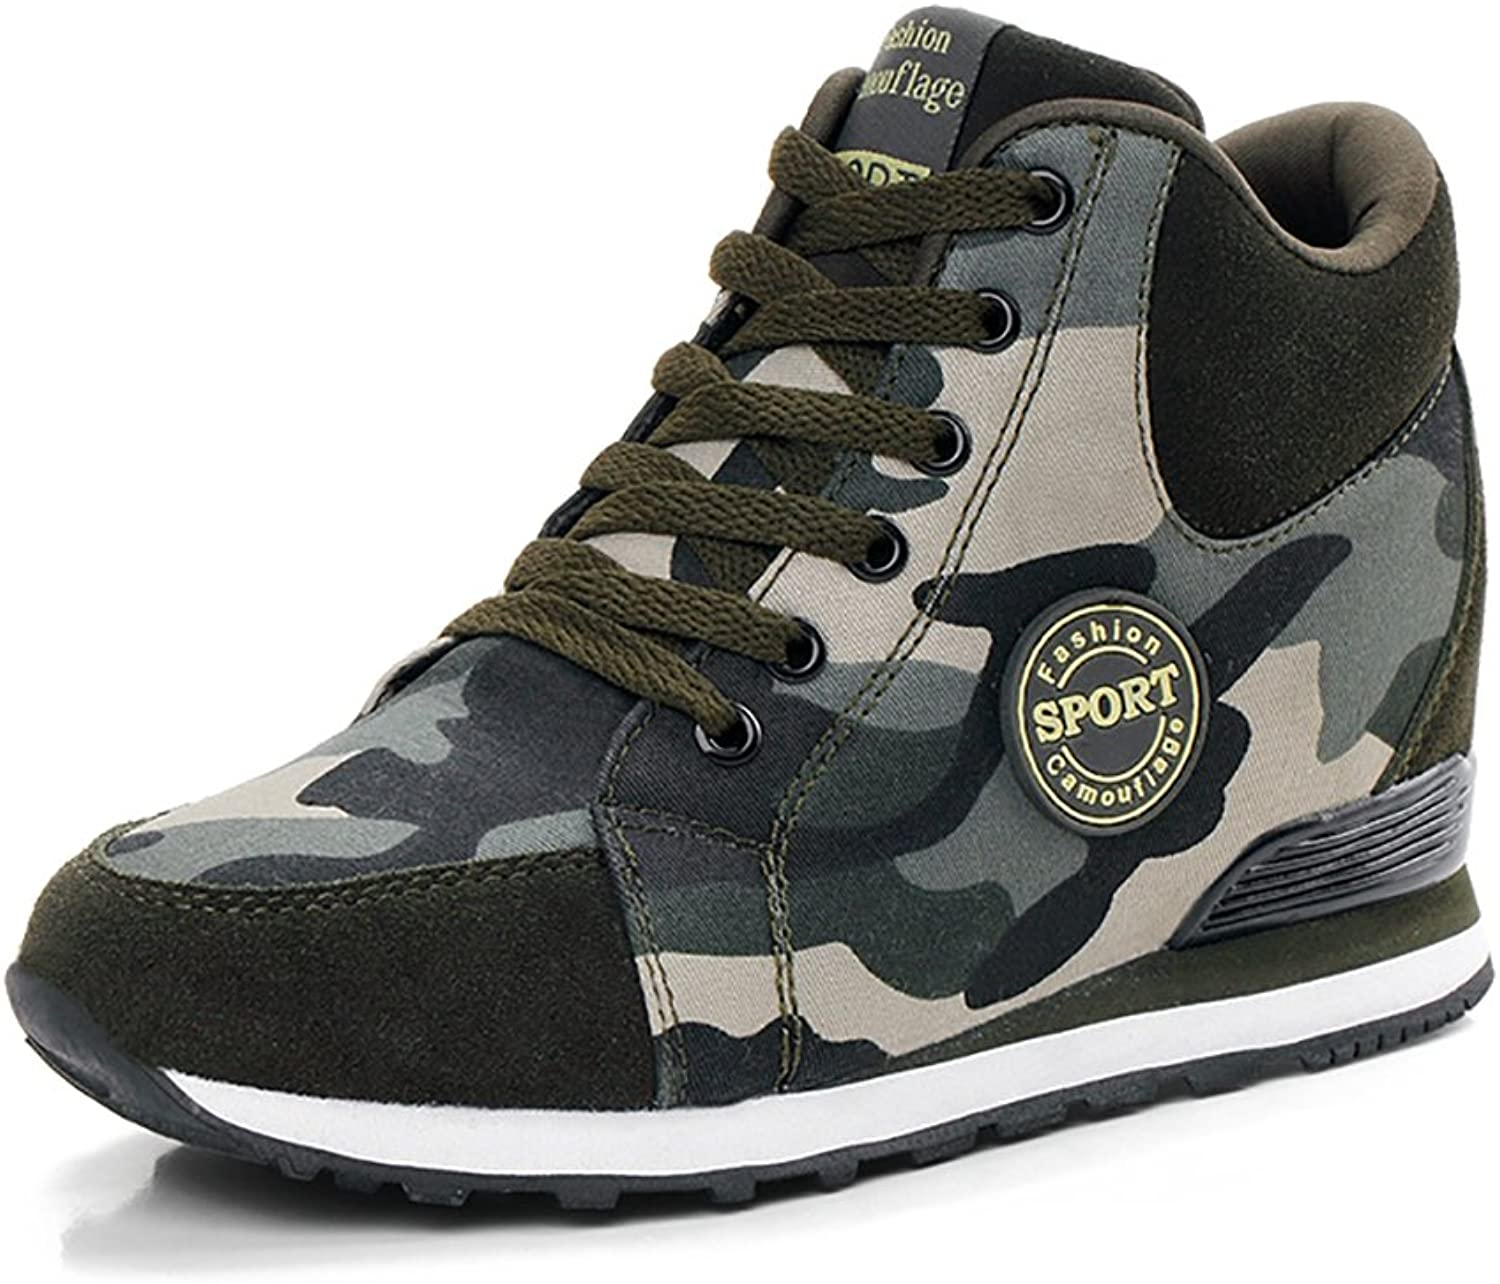 COSDN Womens Camouflage Invisible High-Heeled Wedge Platform Sneakers Casual shoes